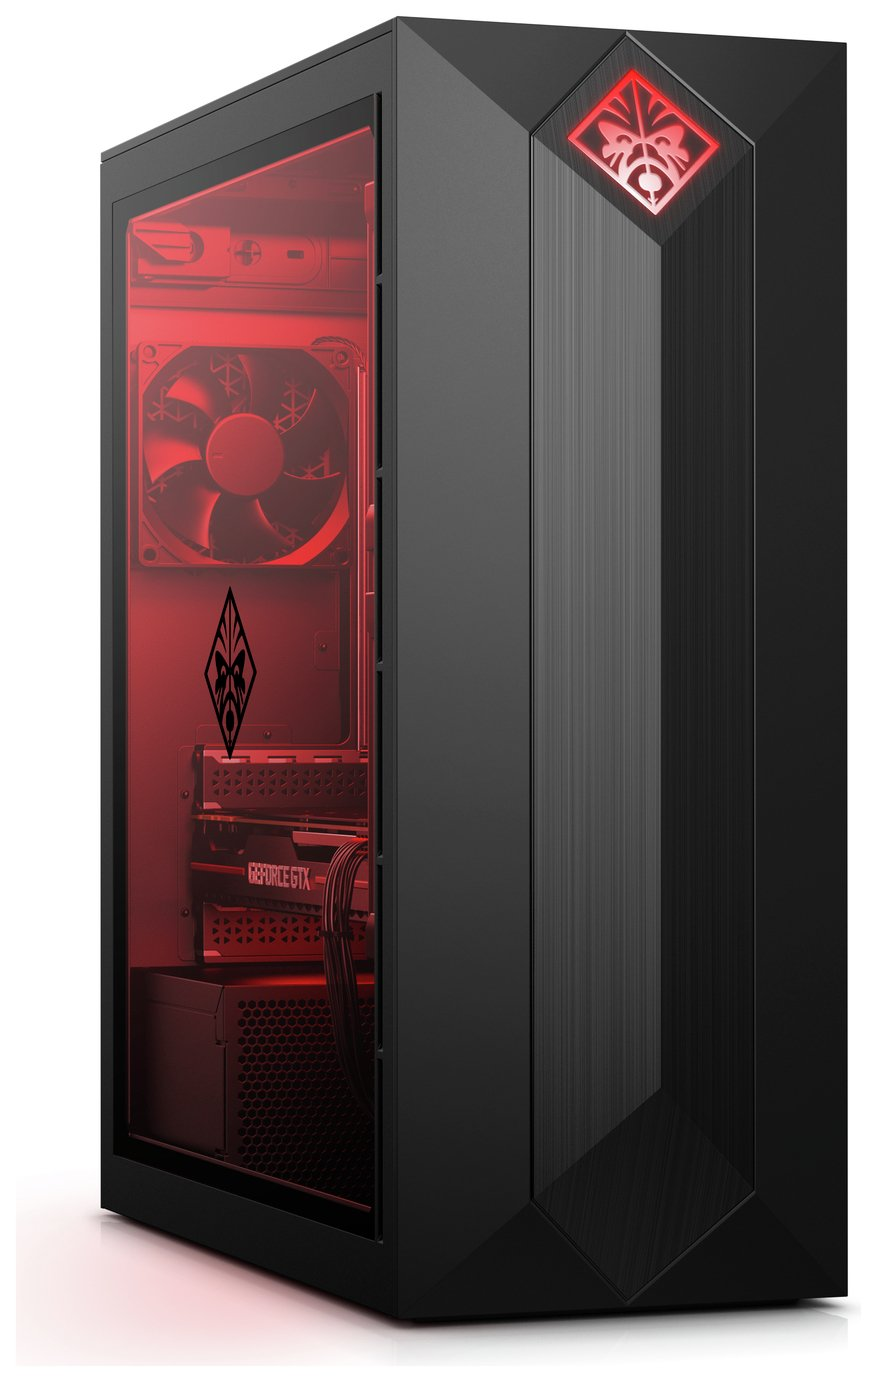 HP Omen i5 8GB 128GB 1TB GTX1060 Gaming PC